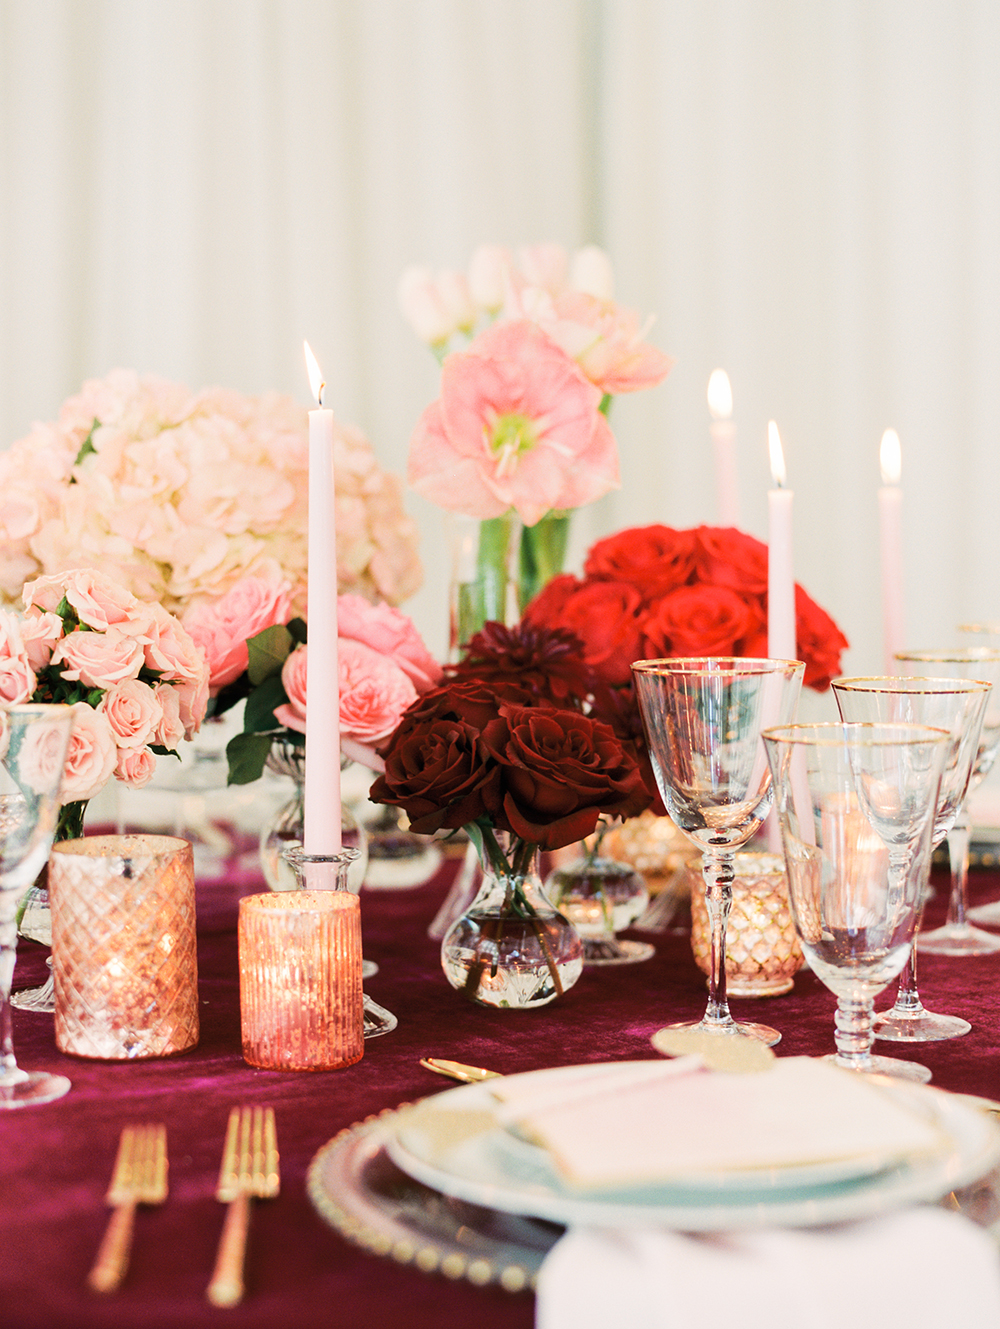 romantic tablescapes - photo by Erin Stubblefield http://ruffledblog.com/chic-city-valentines-day-wedding-inspiration